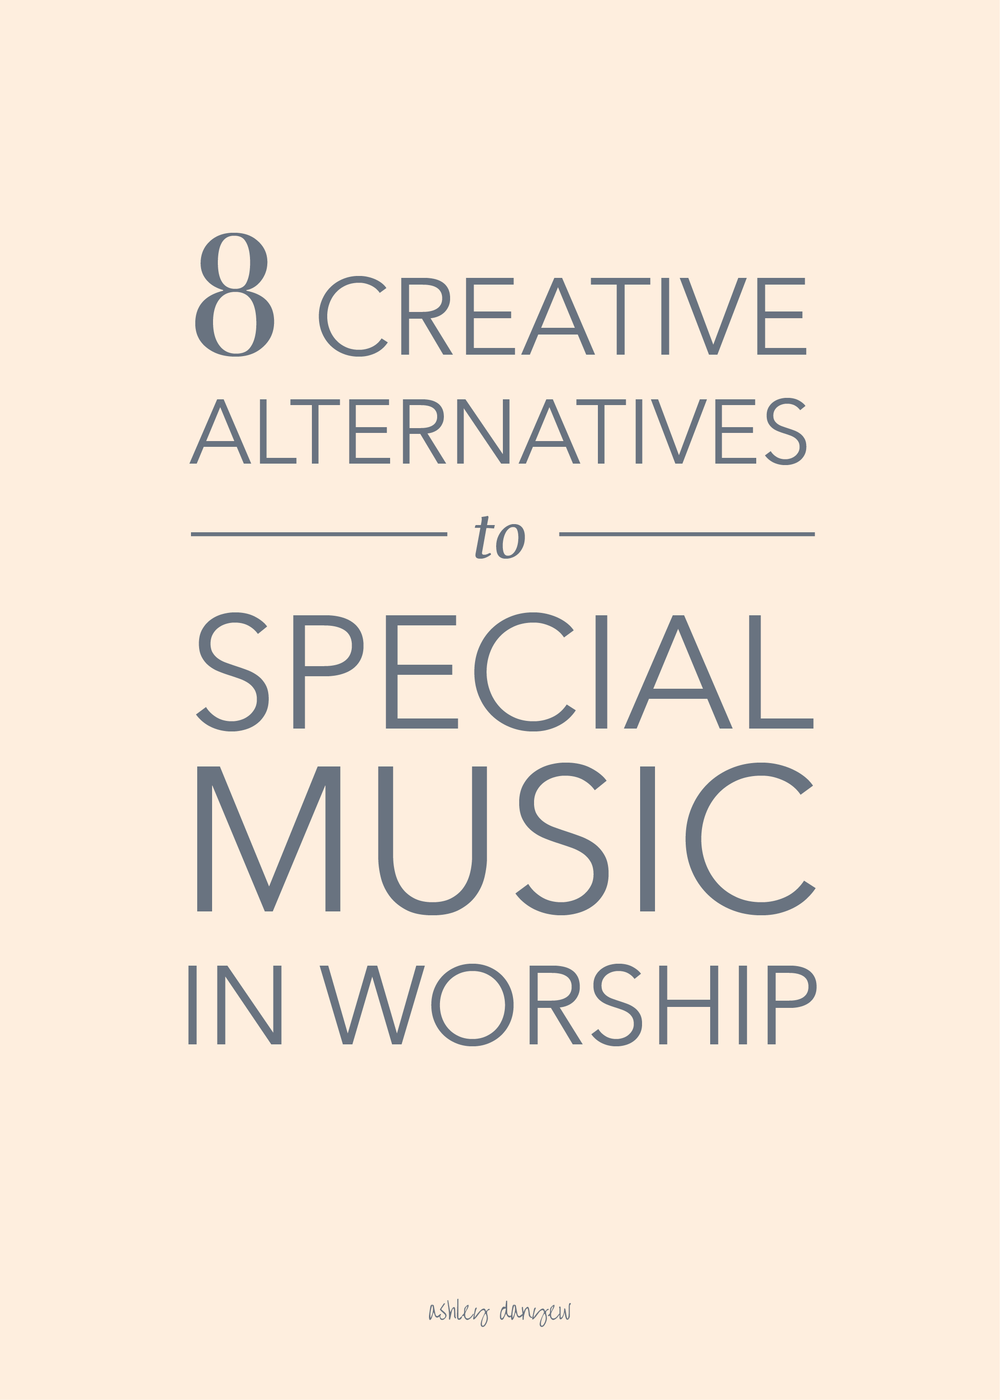 Copy of 8 Creative Alternatives to Special Music in Worship